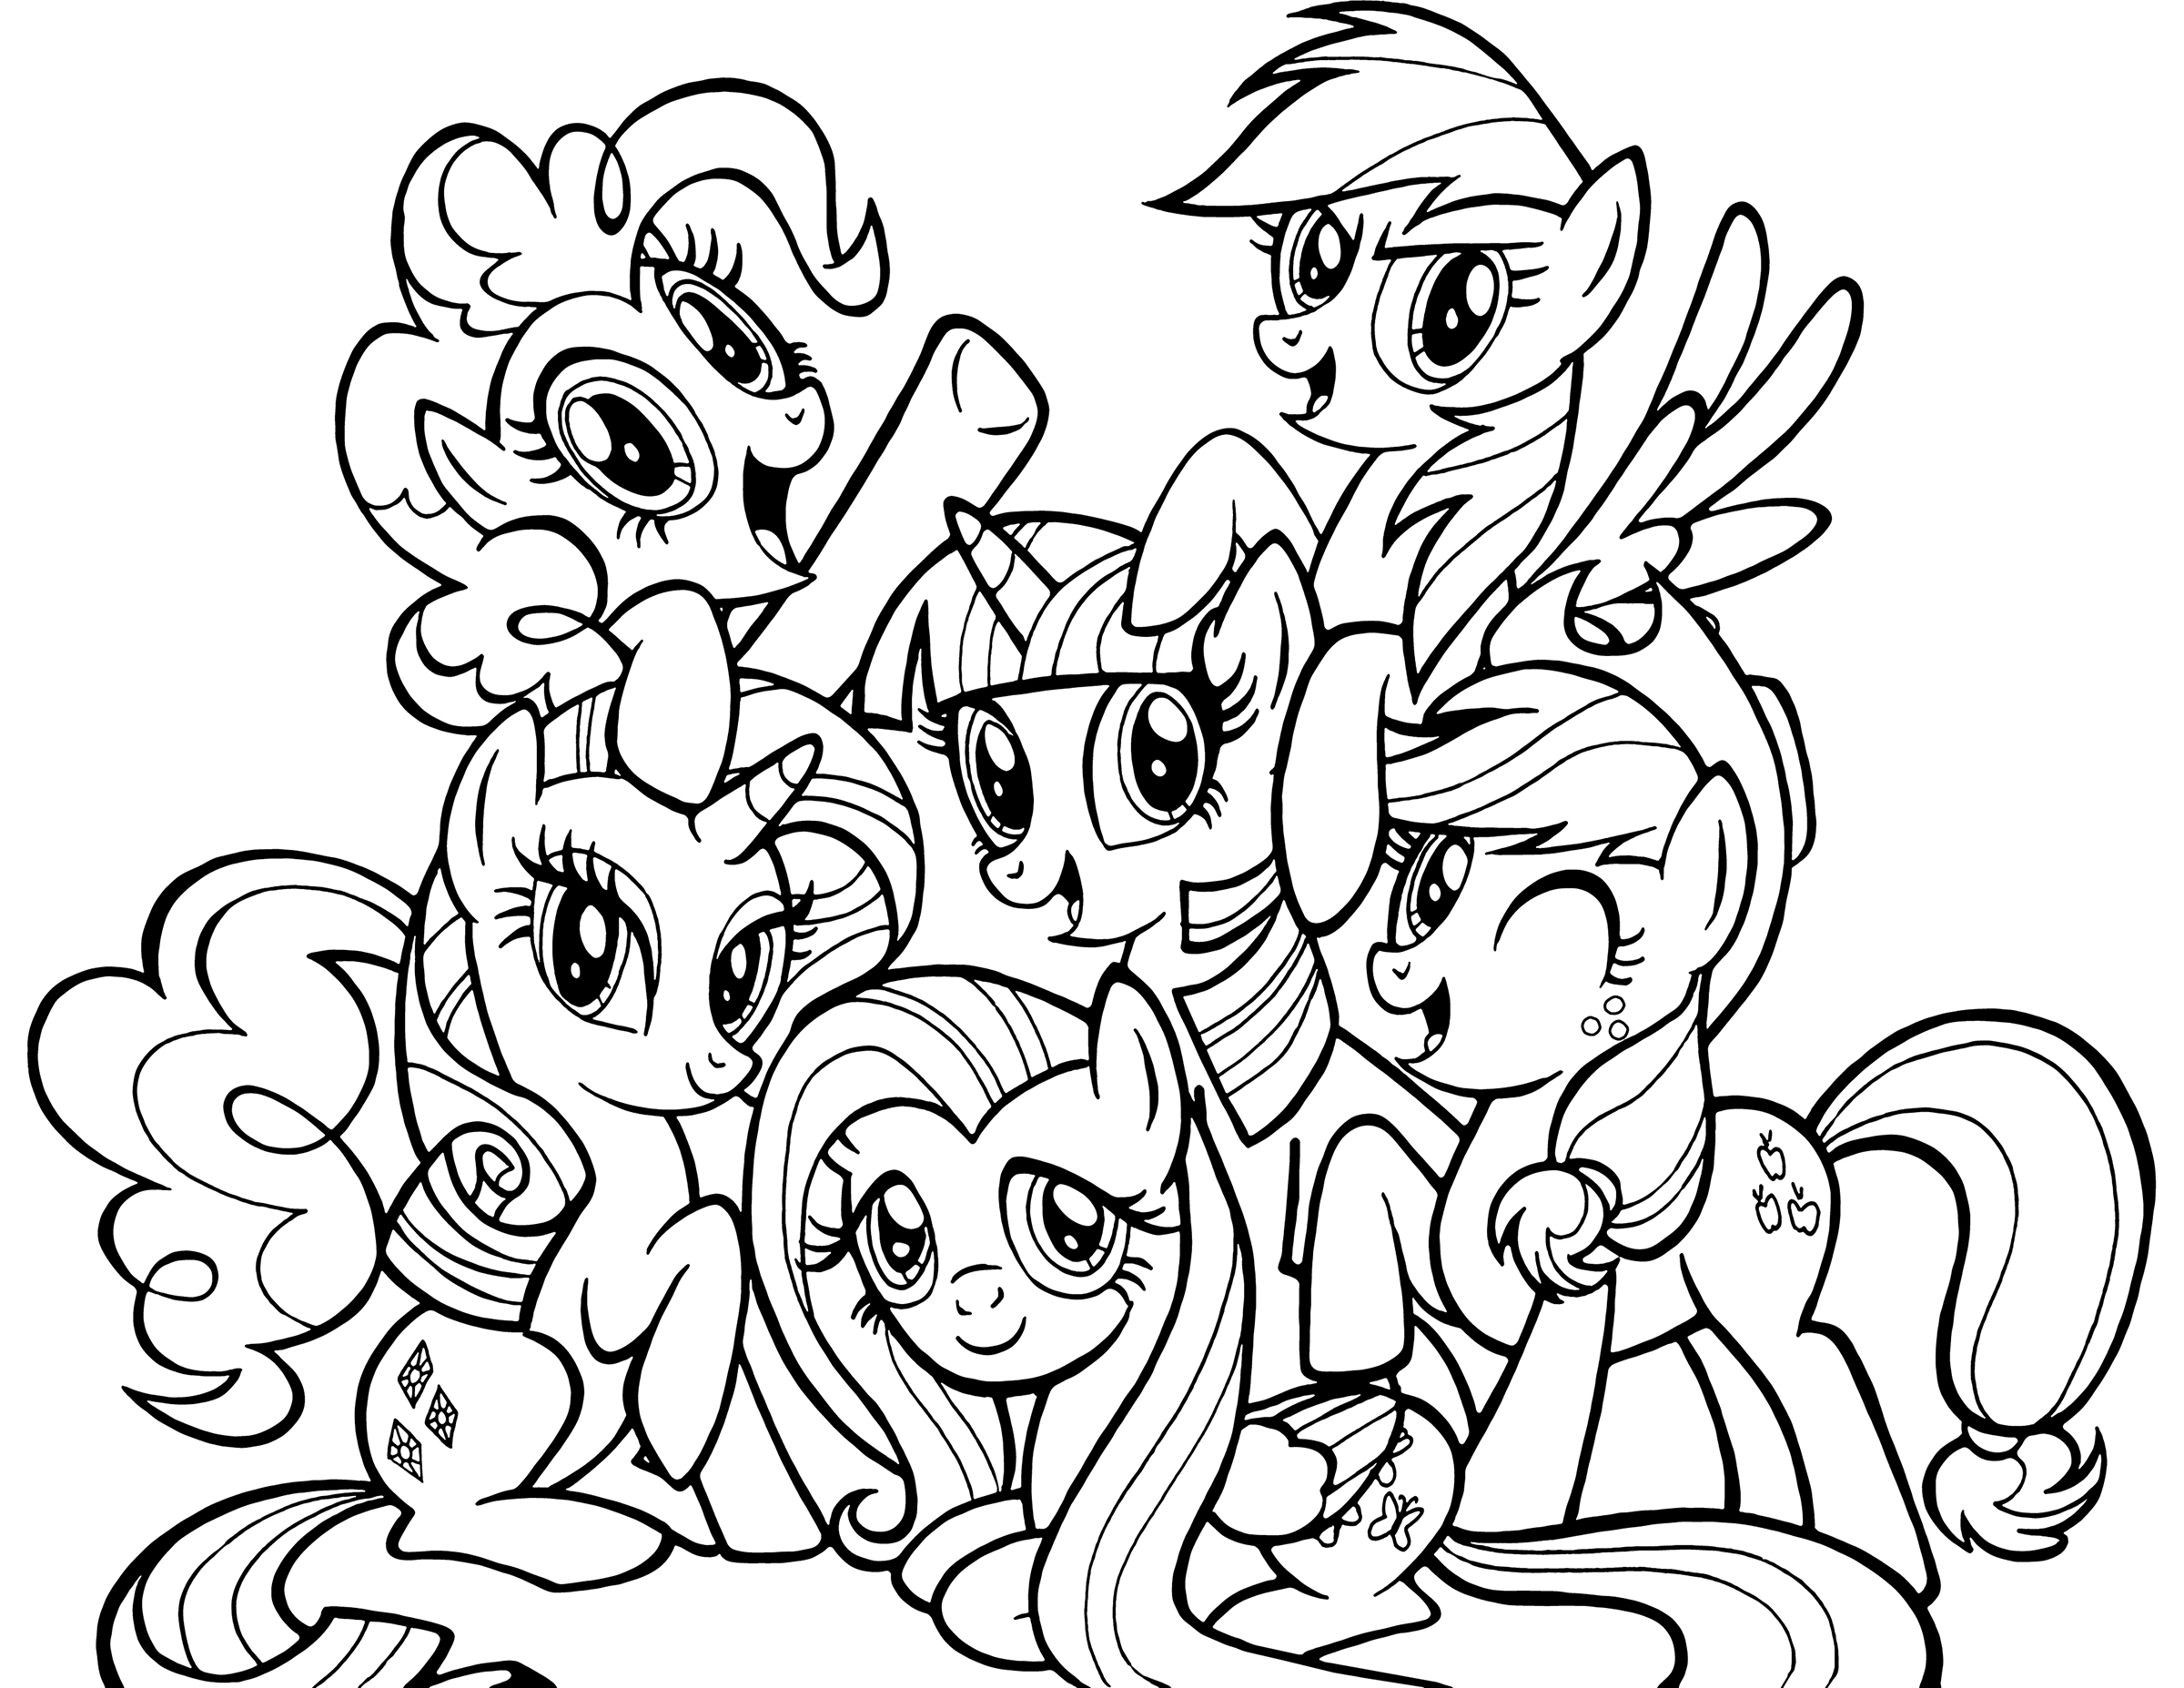 mlp coloring page my little pony coloring pages print and colorcom page mlp coloring